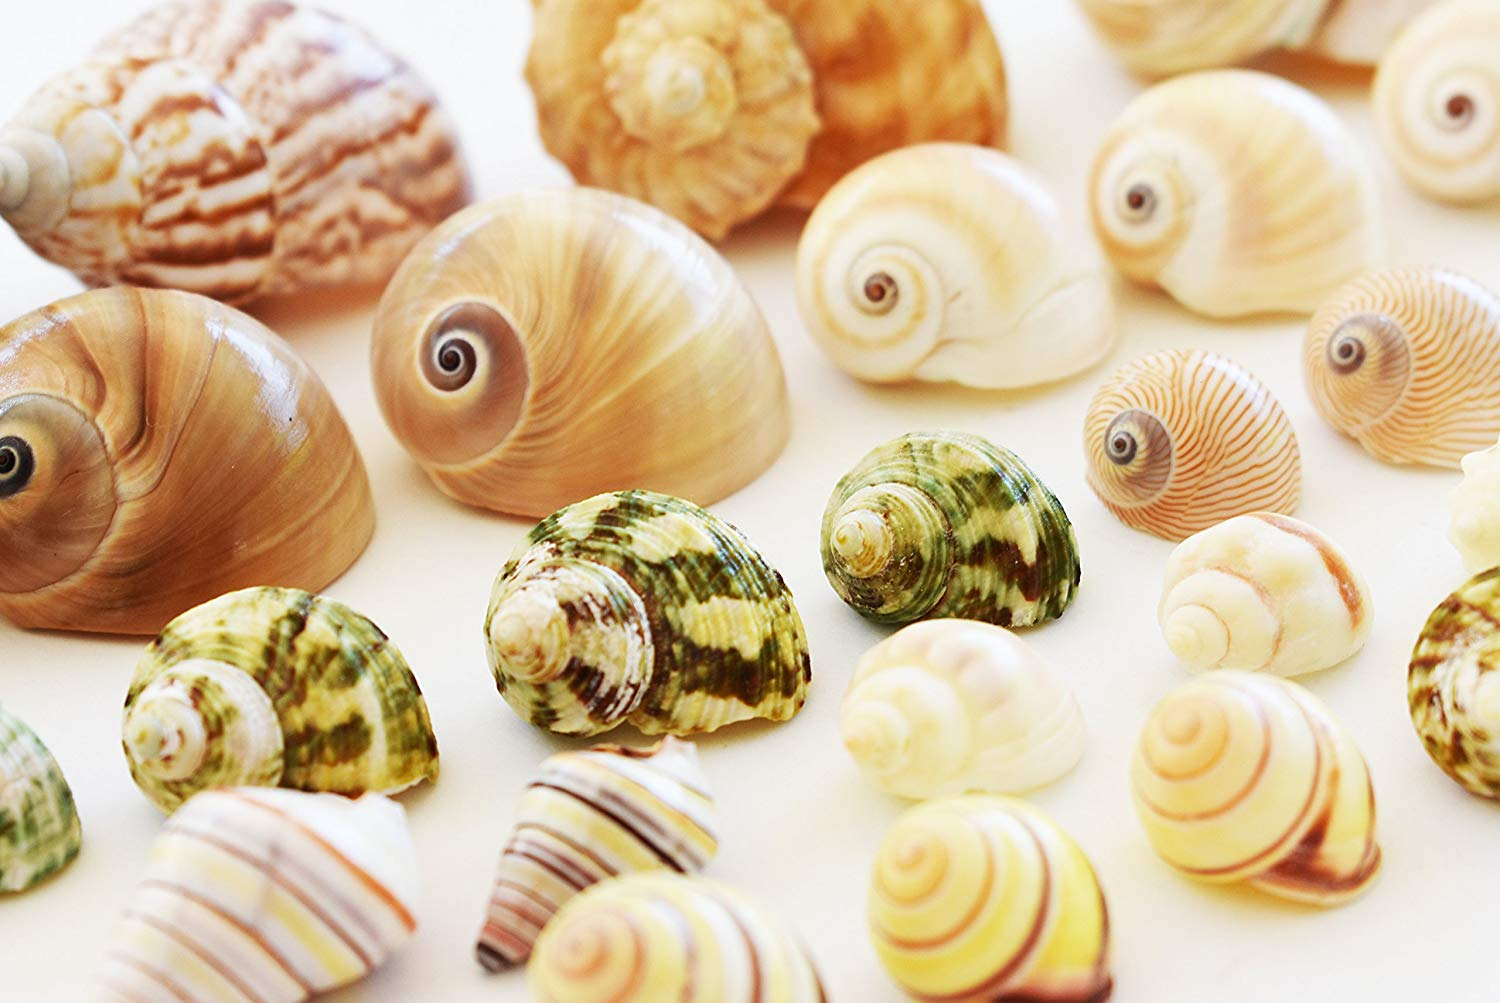 """Florida Shells and Gifts Inc. 25 Shell Hermit Crab Changing Set - Select Shells - Small to Large 1/2""""-1 1/2""""+ opening Sizes - Land Snail, Turbo, Moon, Cornball and Conch Shells"""